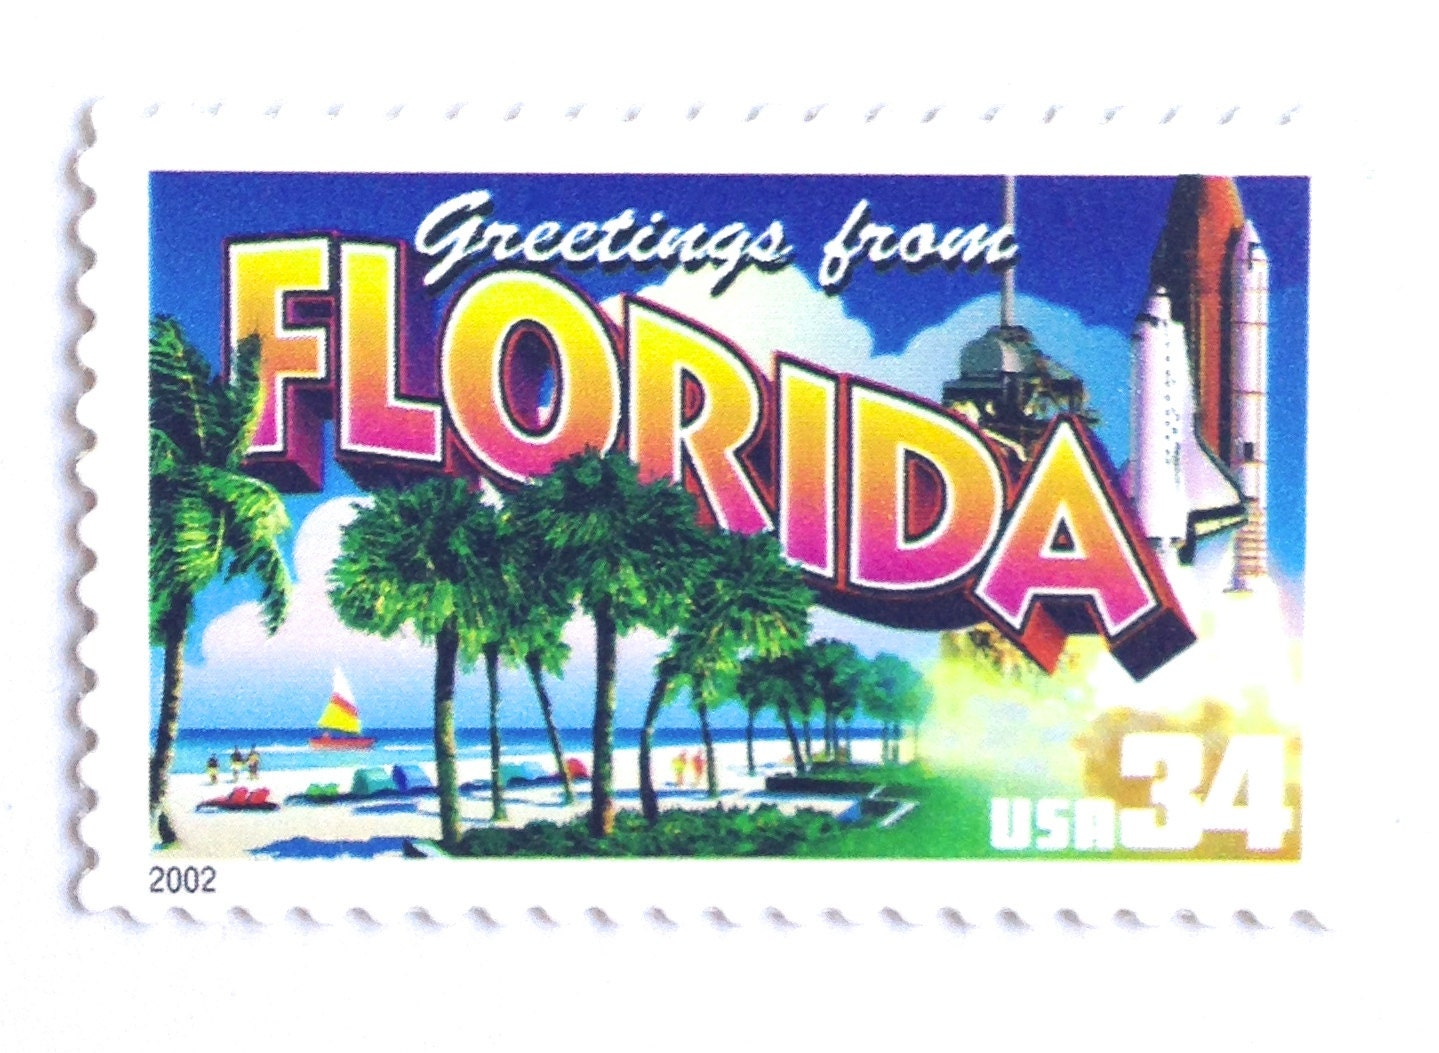 5 Unused Florida Vintage Postage Stamps Greetings From Florida Stamps Palm Tree Beach And Space Shuttle Stamps For Mailing